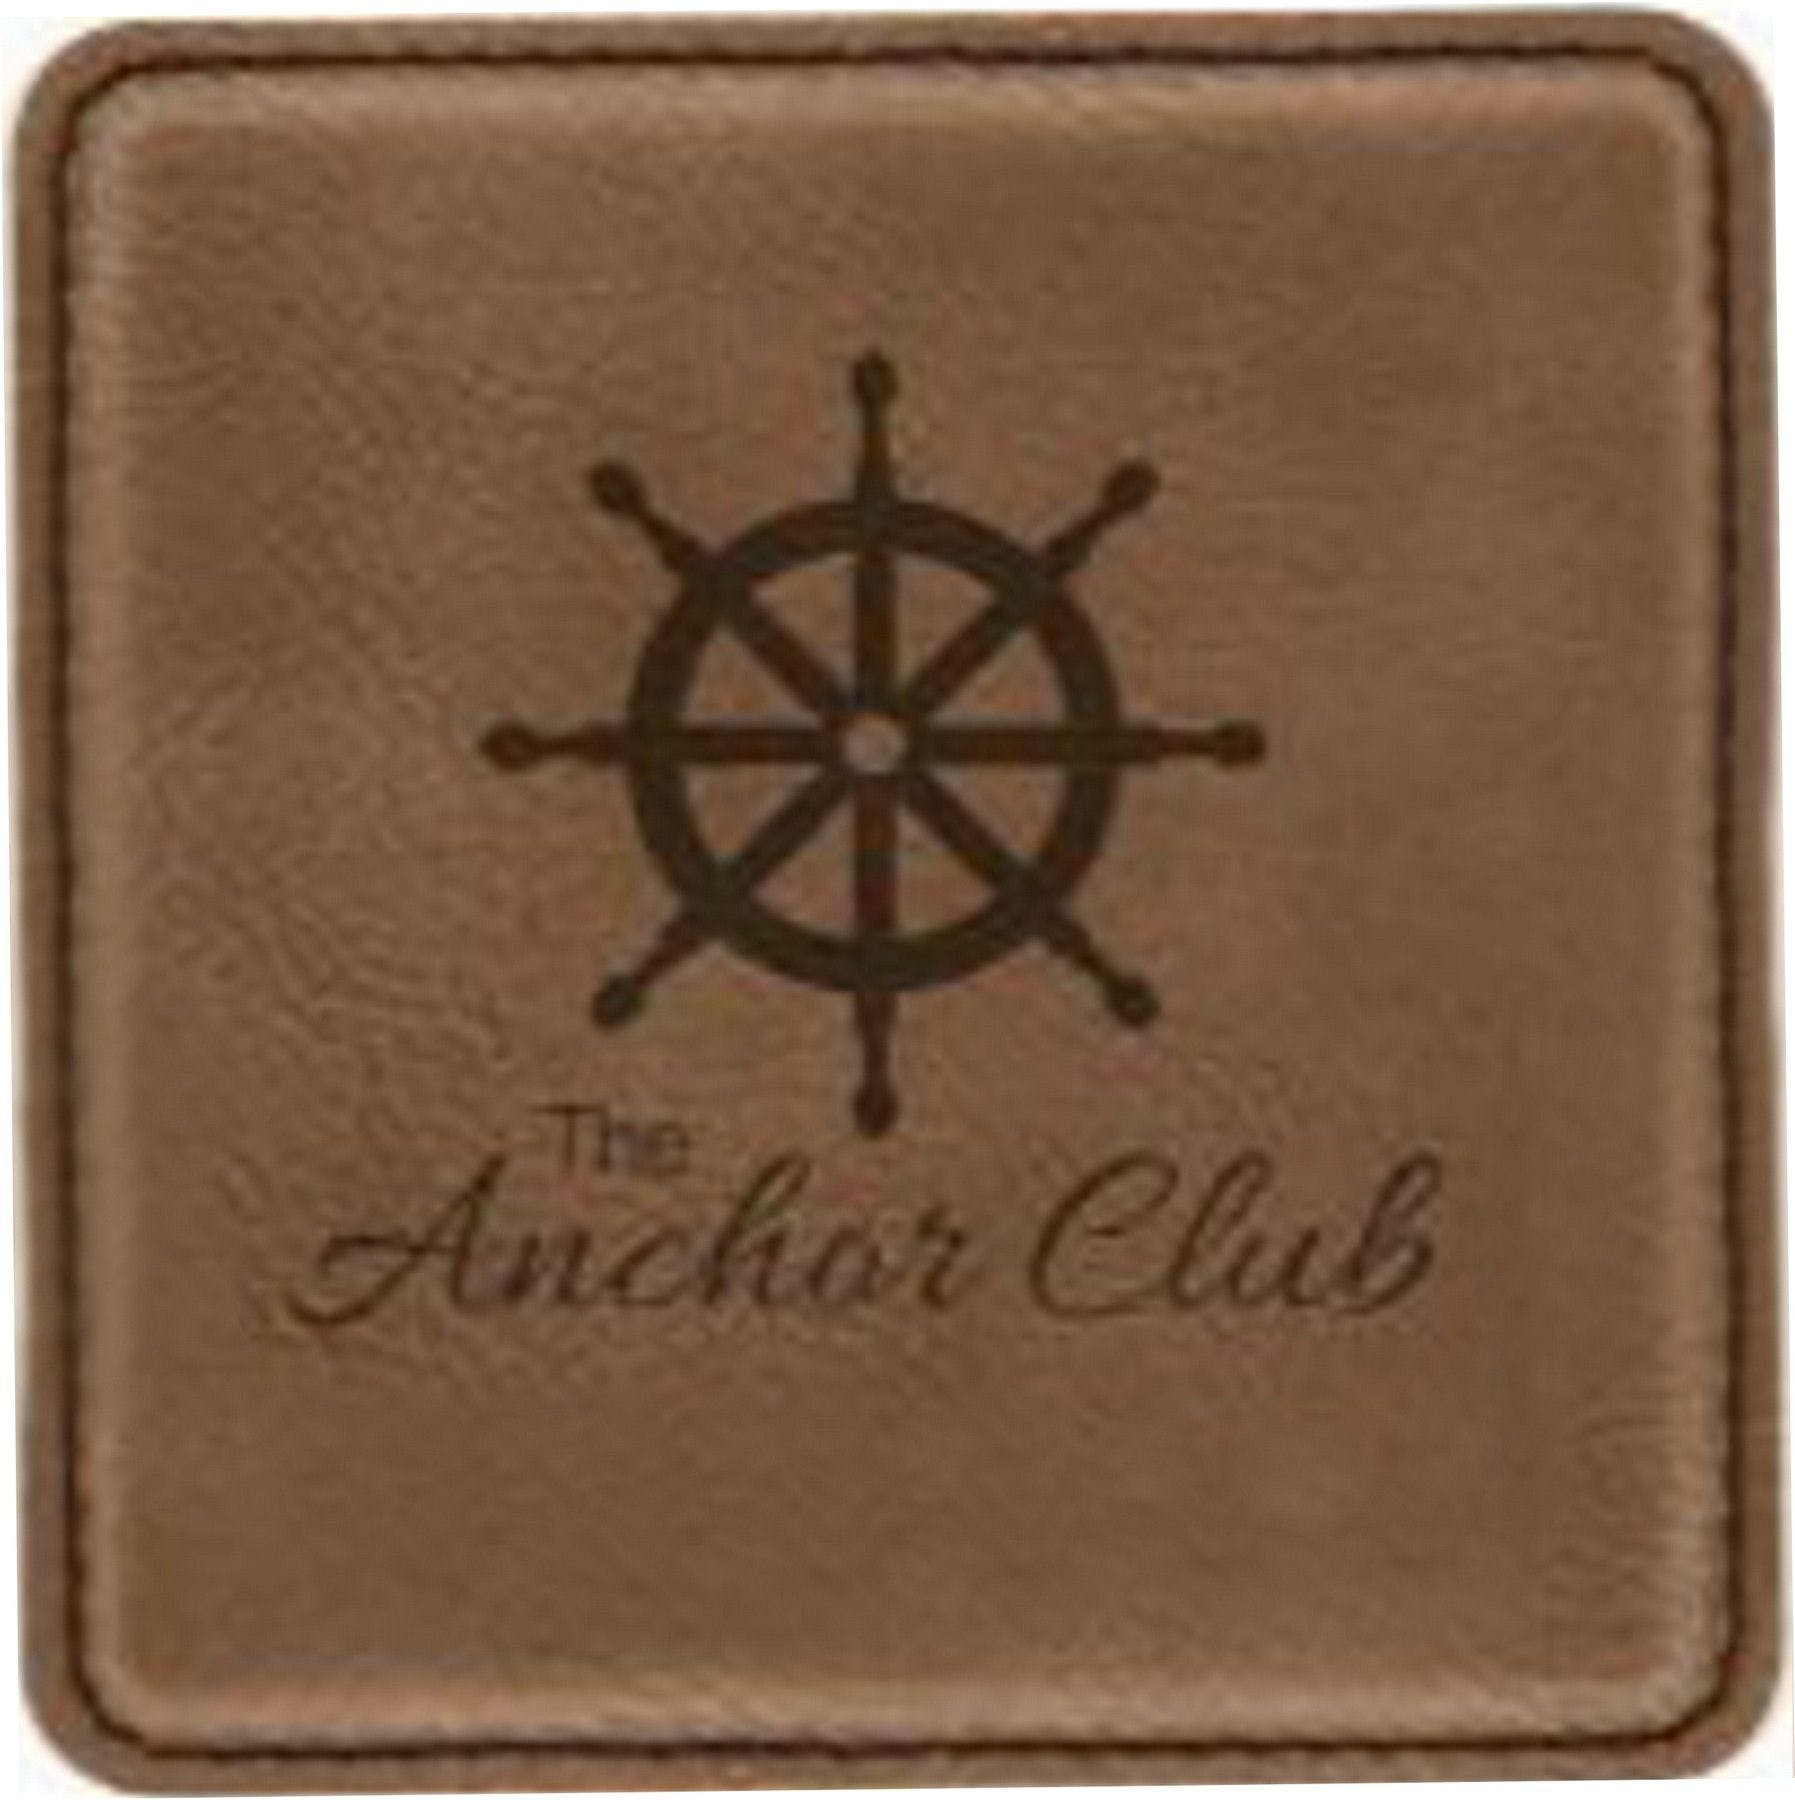 3 7/8 x 3 7/8 Dark Brown Square Leatherette Coaster Drink coaster sold by Ink Splash Promos™, LLC